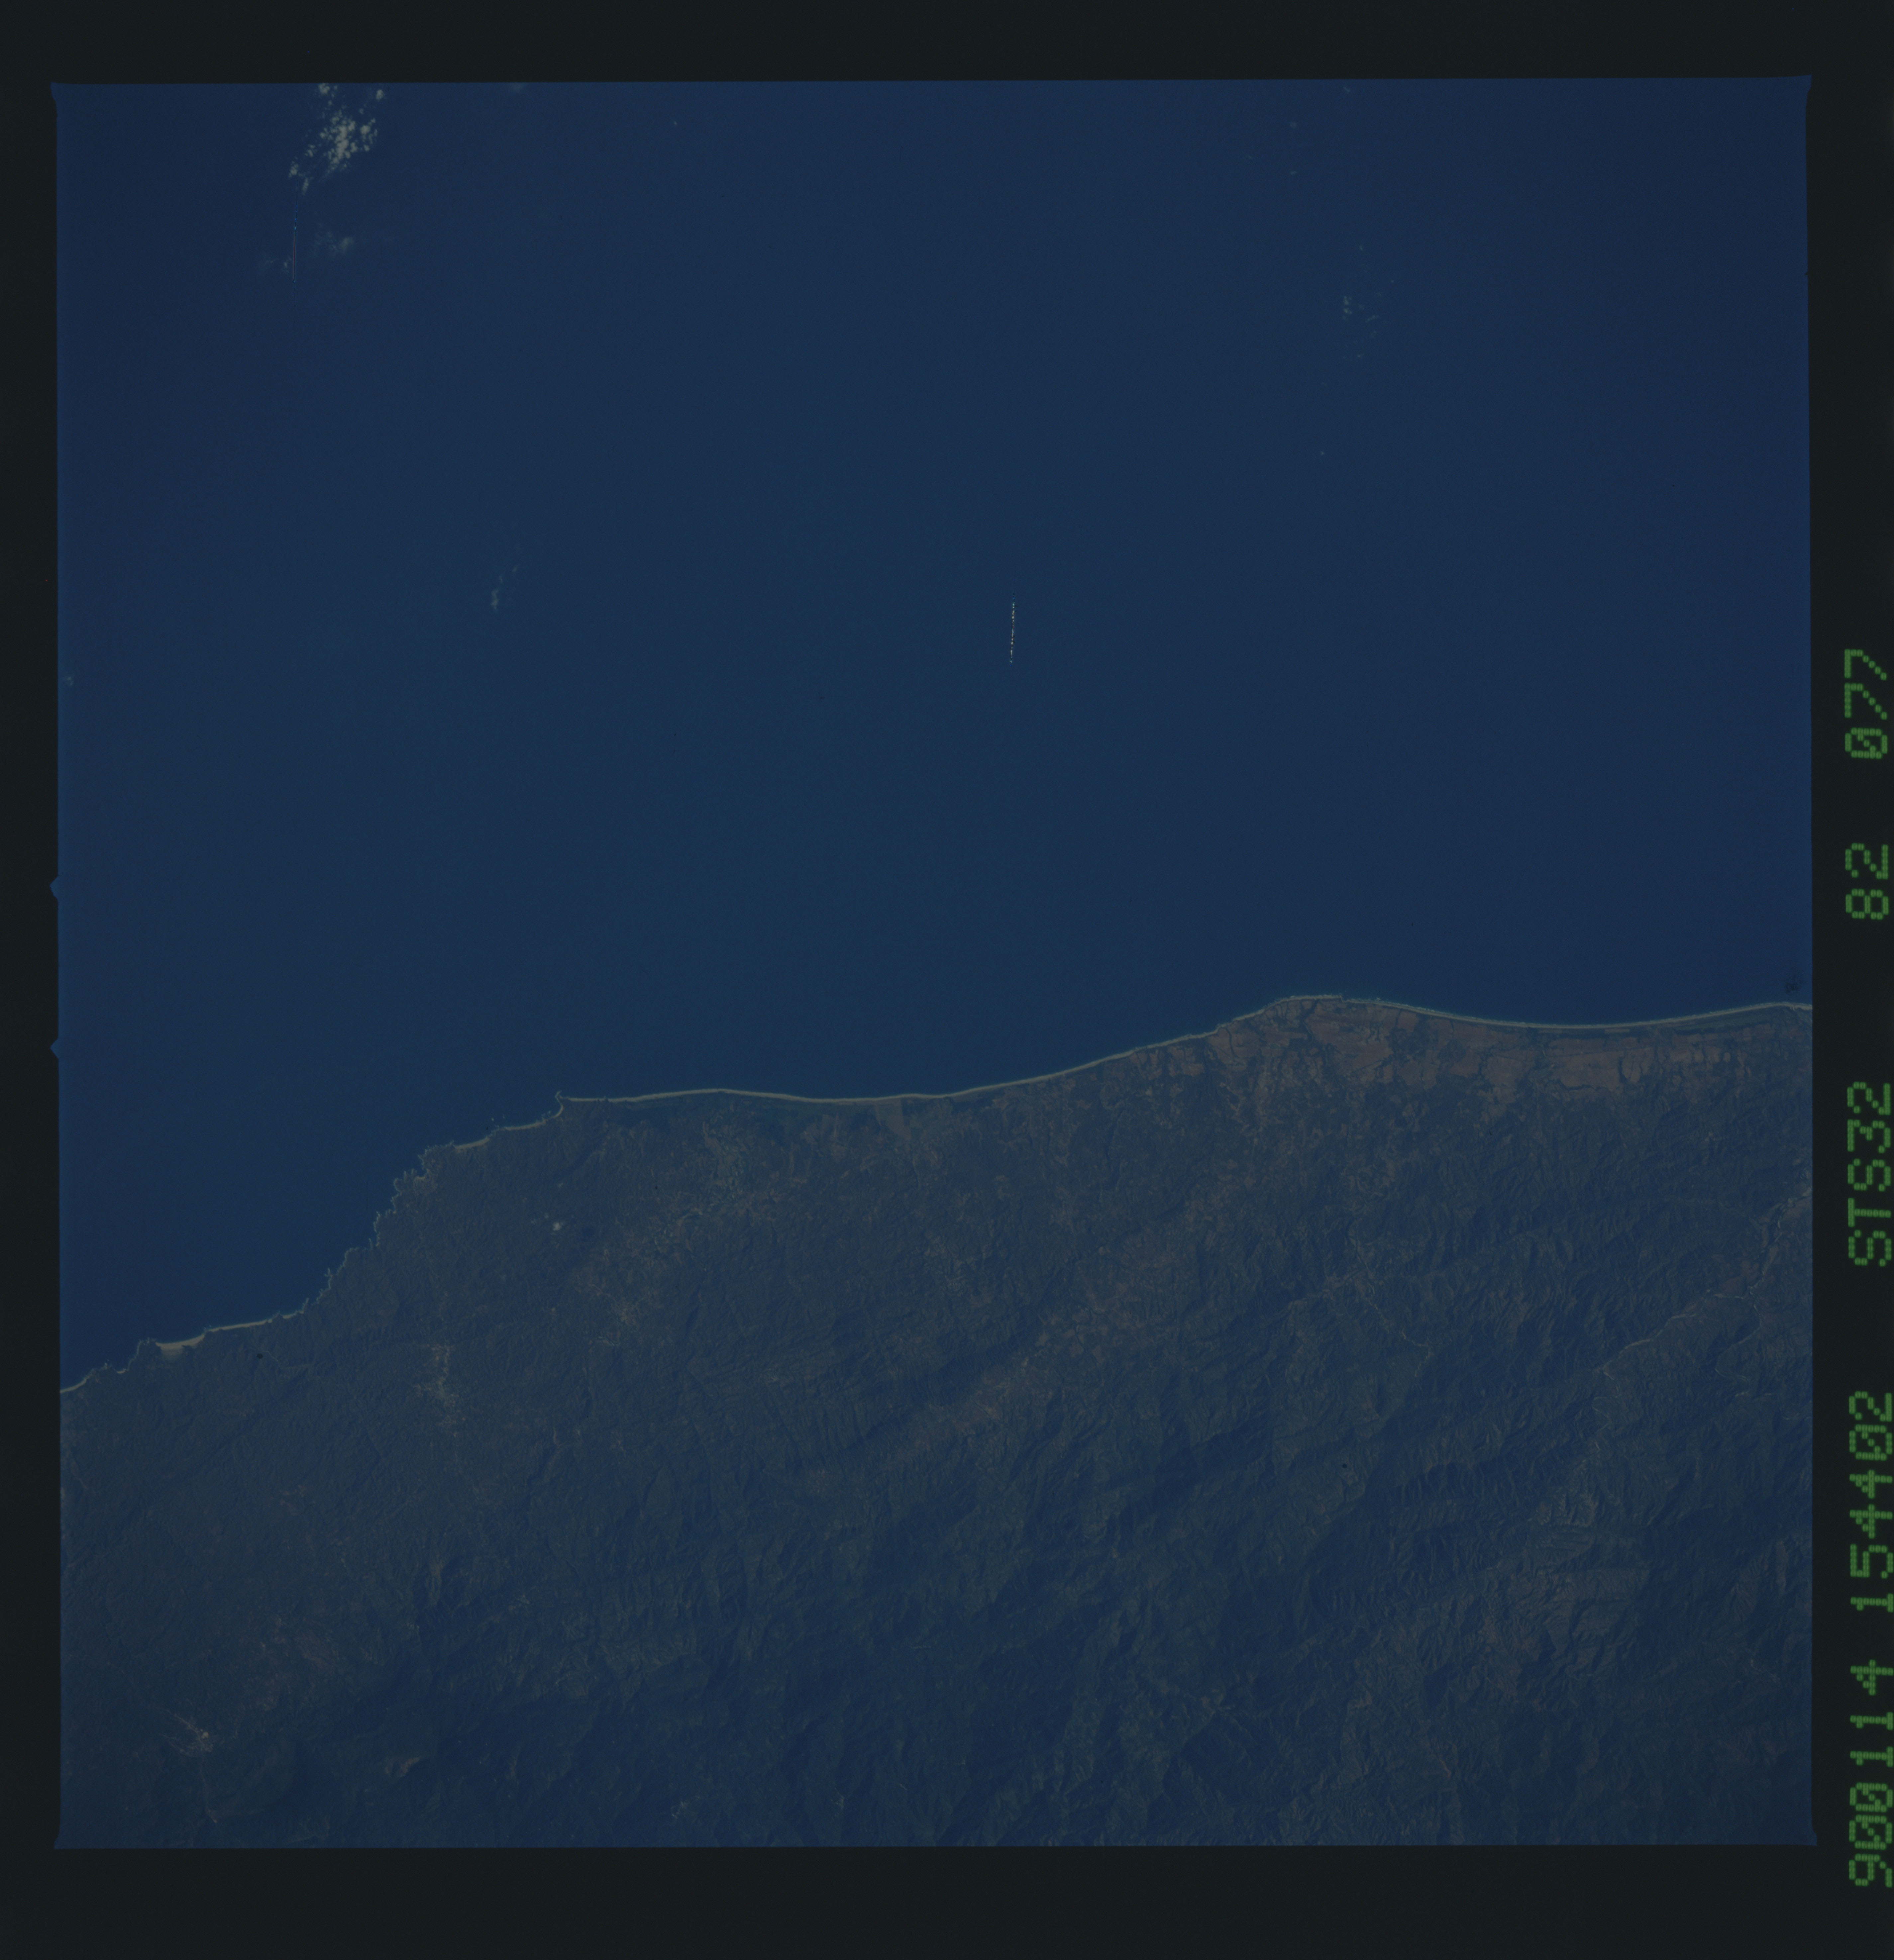 S32-82-077 - STS-032 - STS-32 earth observations